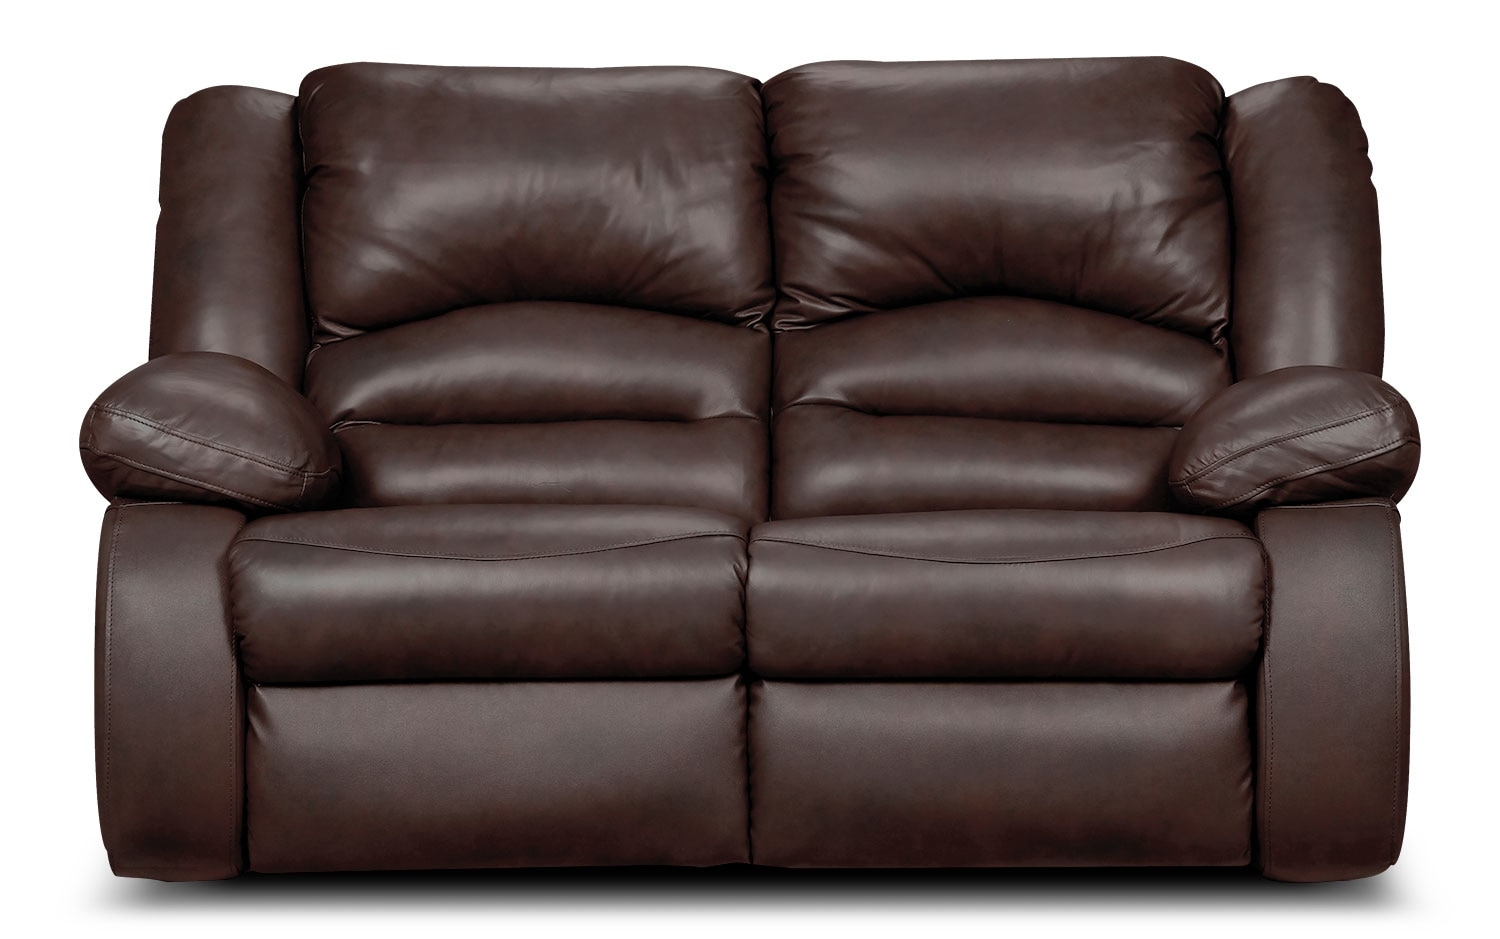 Living Room Furniture - Toreno Brown Genuine Leather Reclining Loveseat